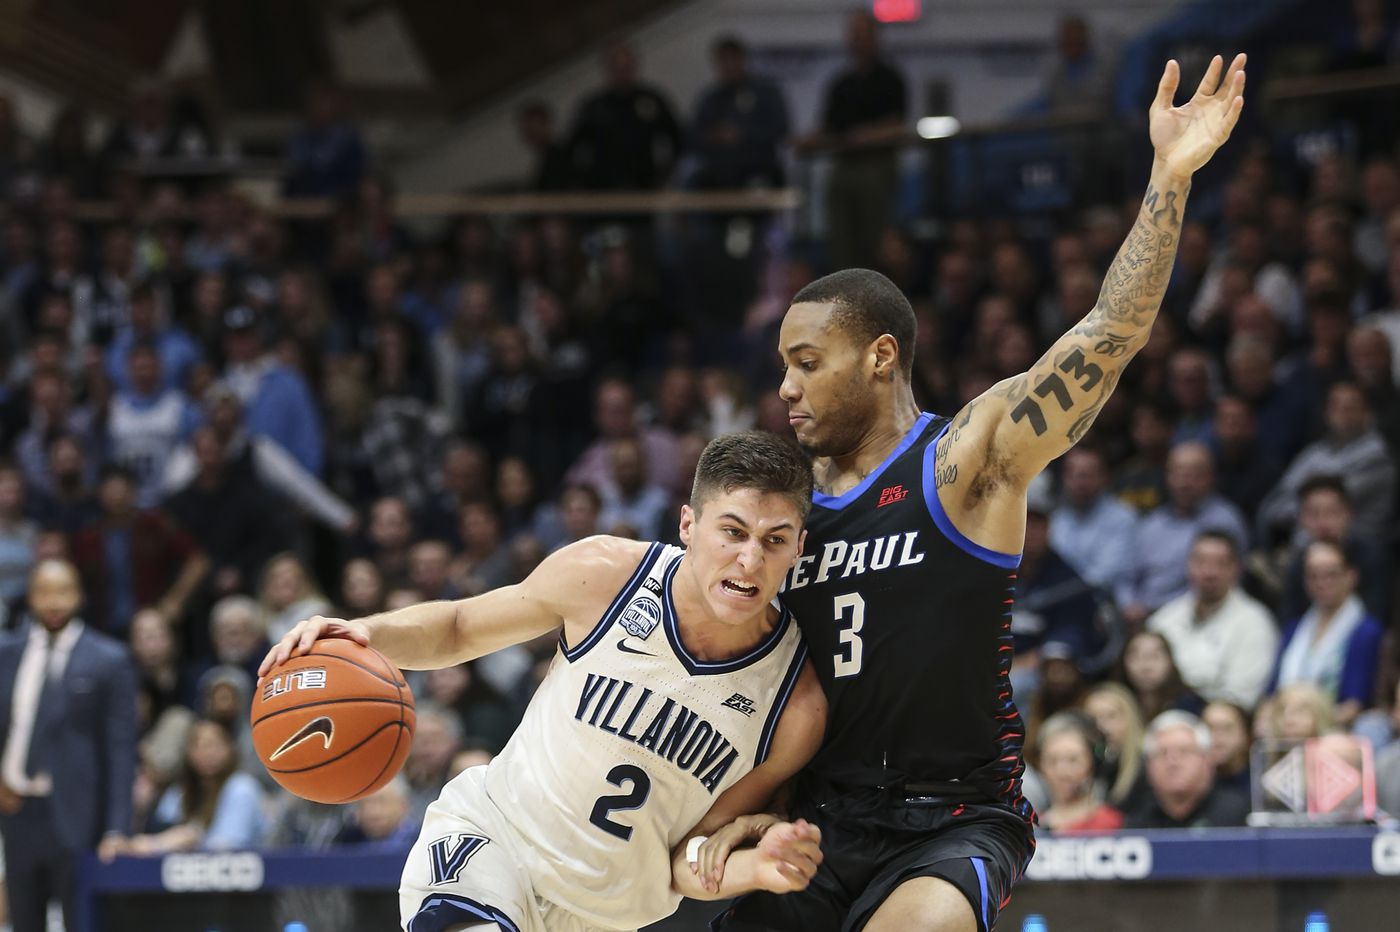 No. 14 Villanova 79, DePaul 75: Stats, highlights and reaction from the Wildcats' overtime thriller